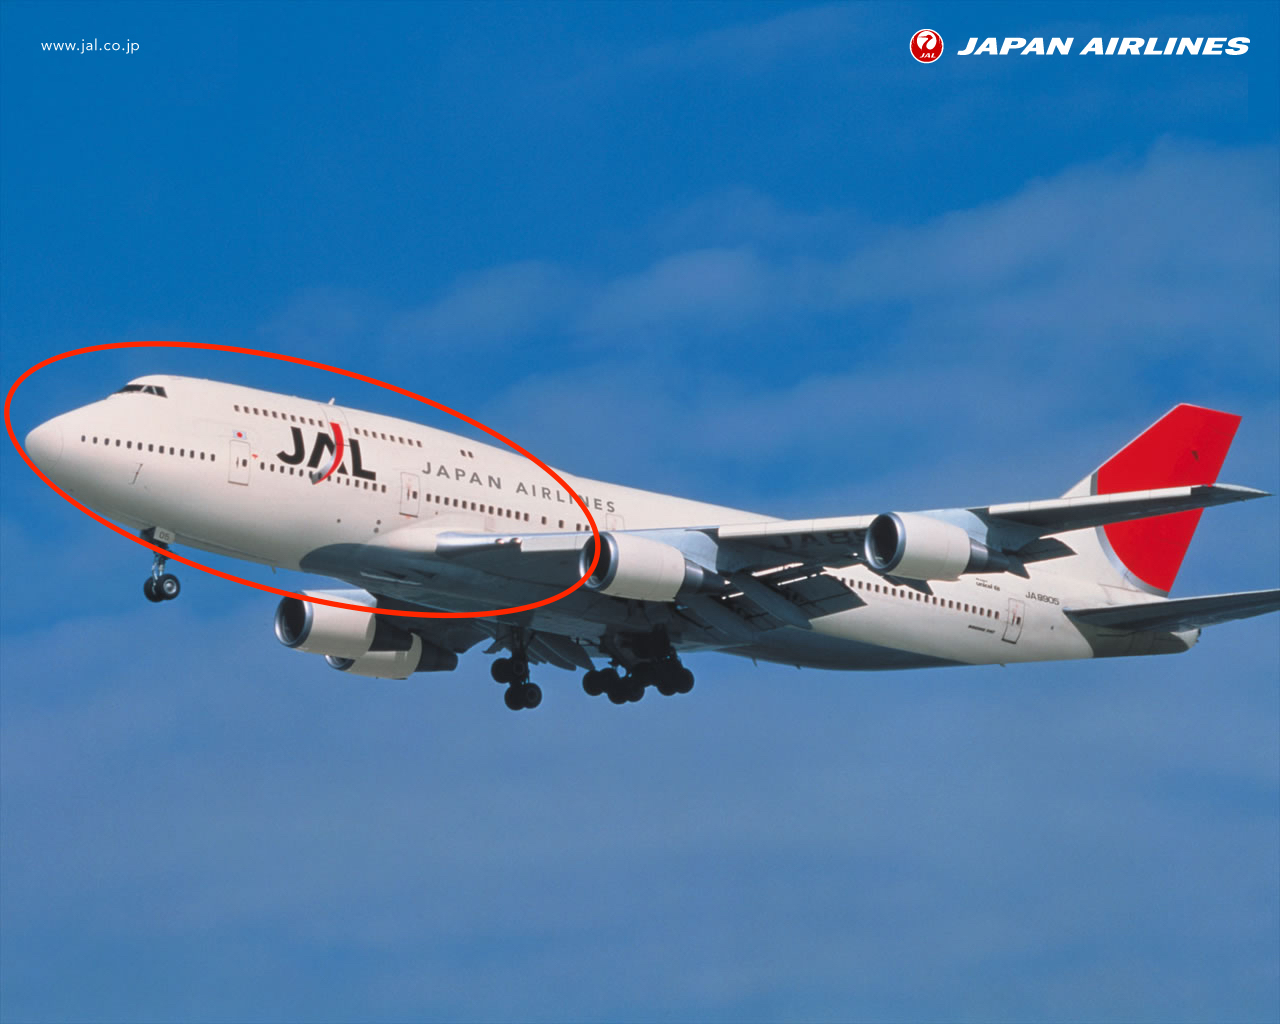 jal-747-400